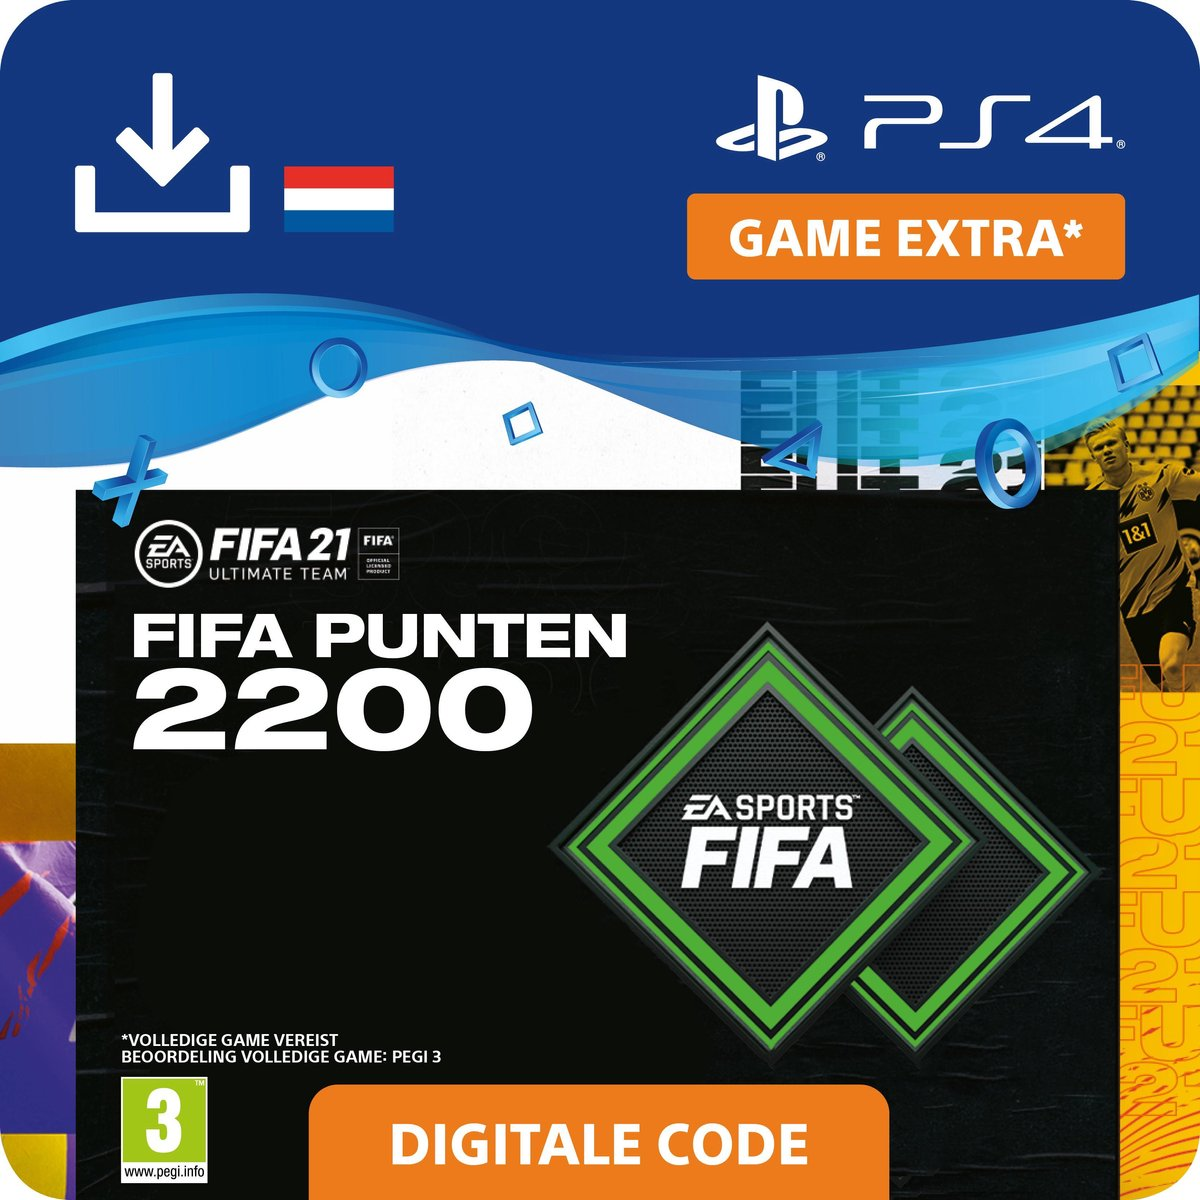 2.200 FUT Punten - FIFA 21 Ultimate Team - In-Game tegoed   PS4/PS5 Download - NL